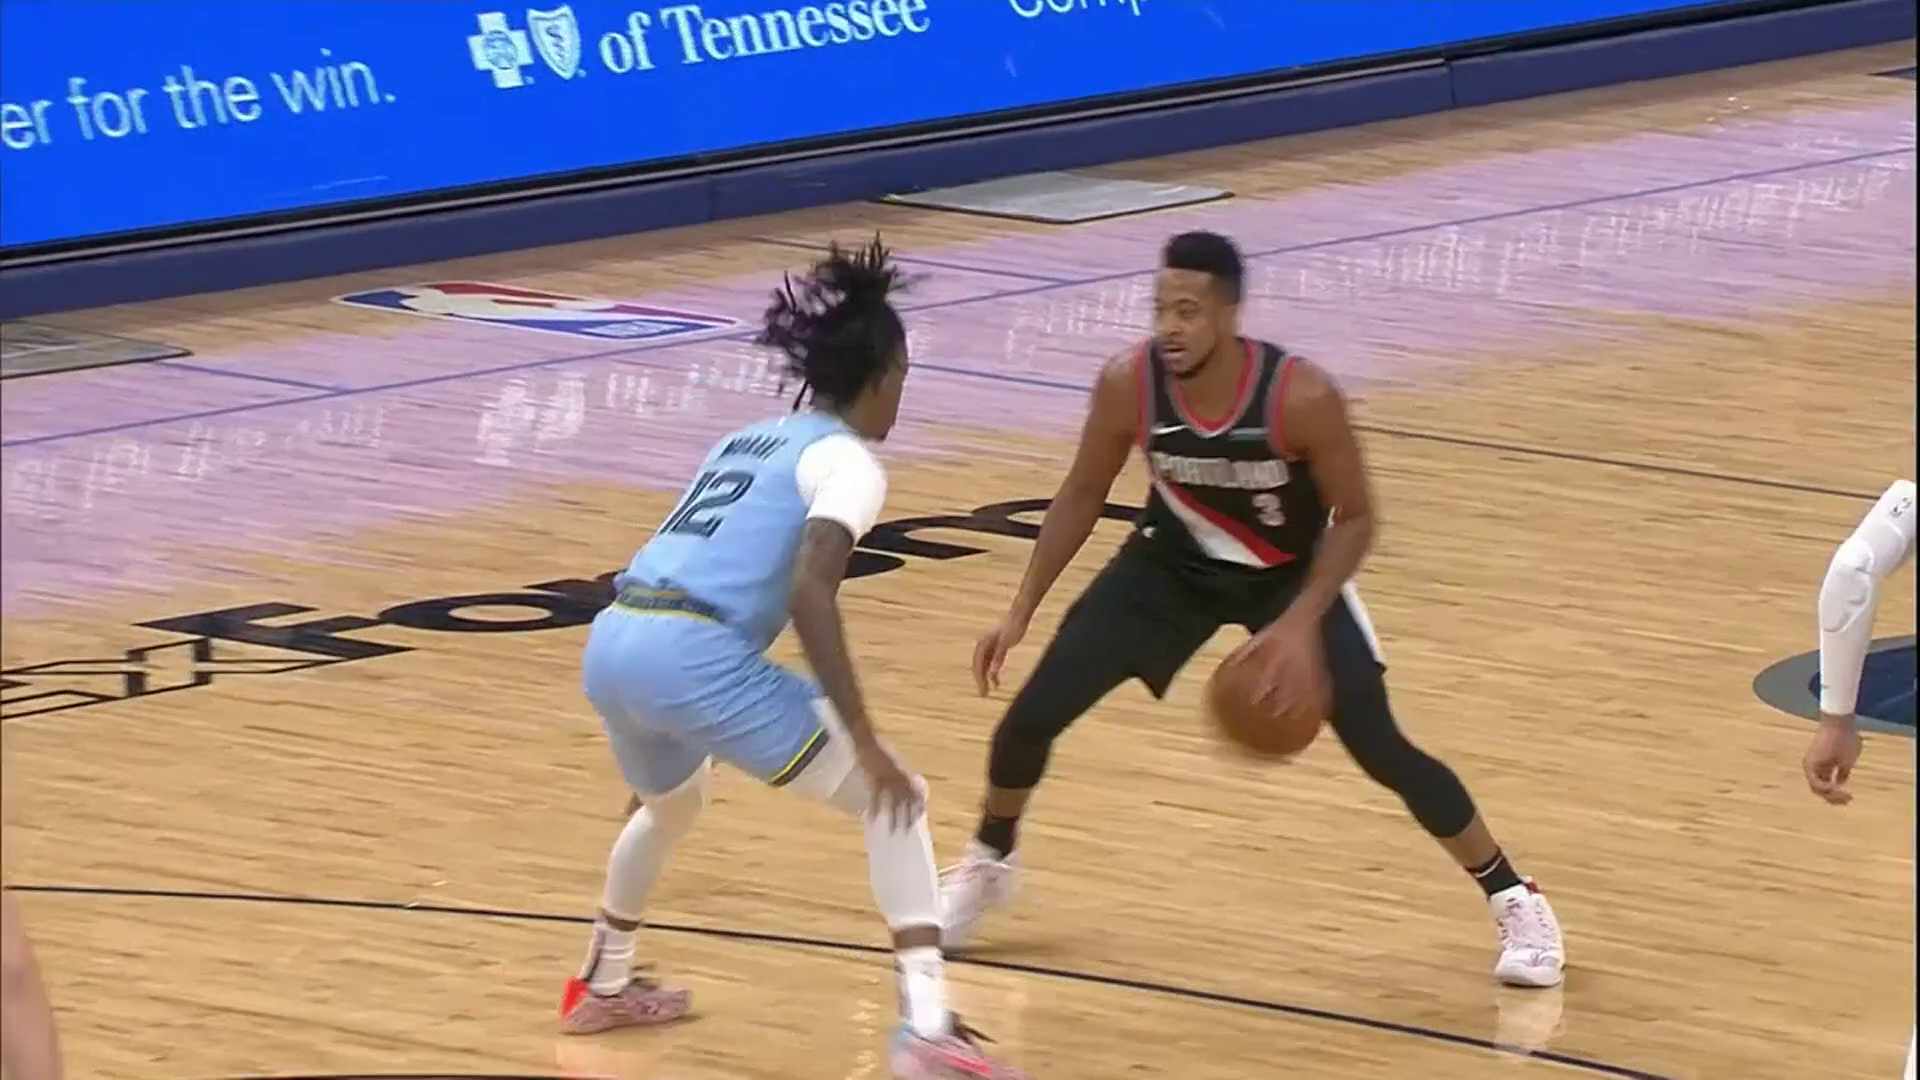 McCollum's unleashes a flurry of moves and hits the shot